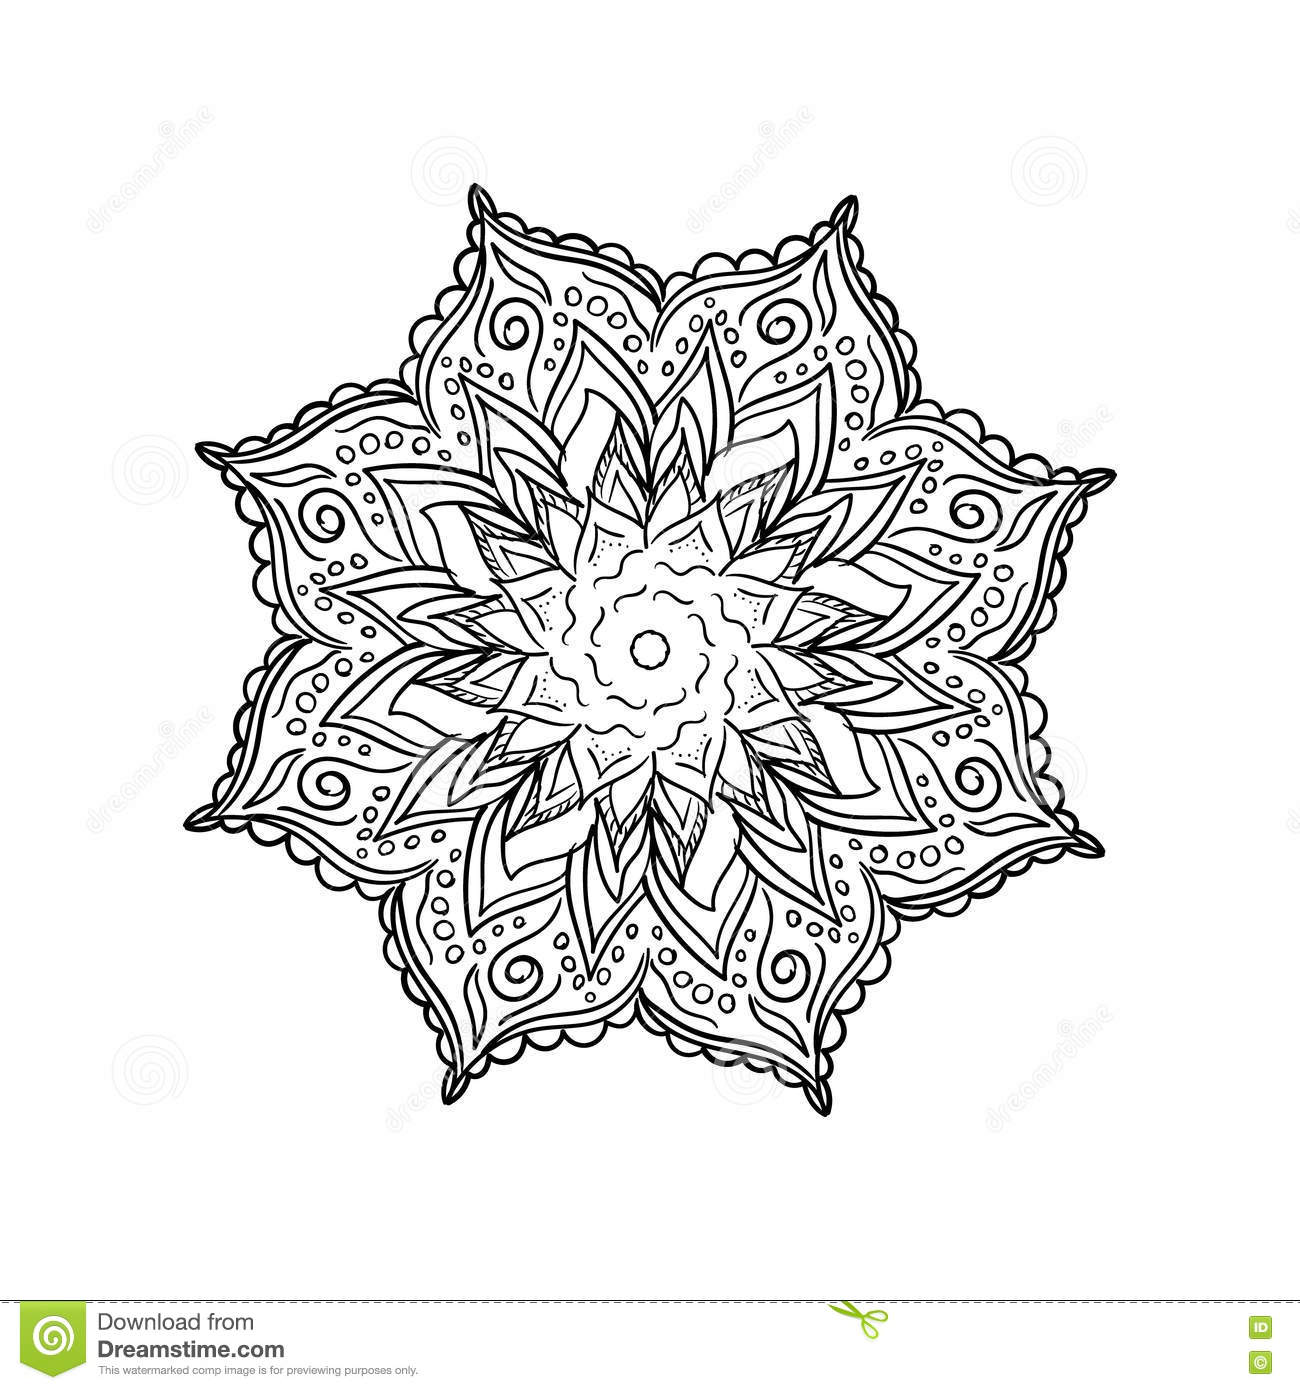 doodle flower mandala coloring book outline line isolated page intricate vector